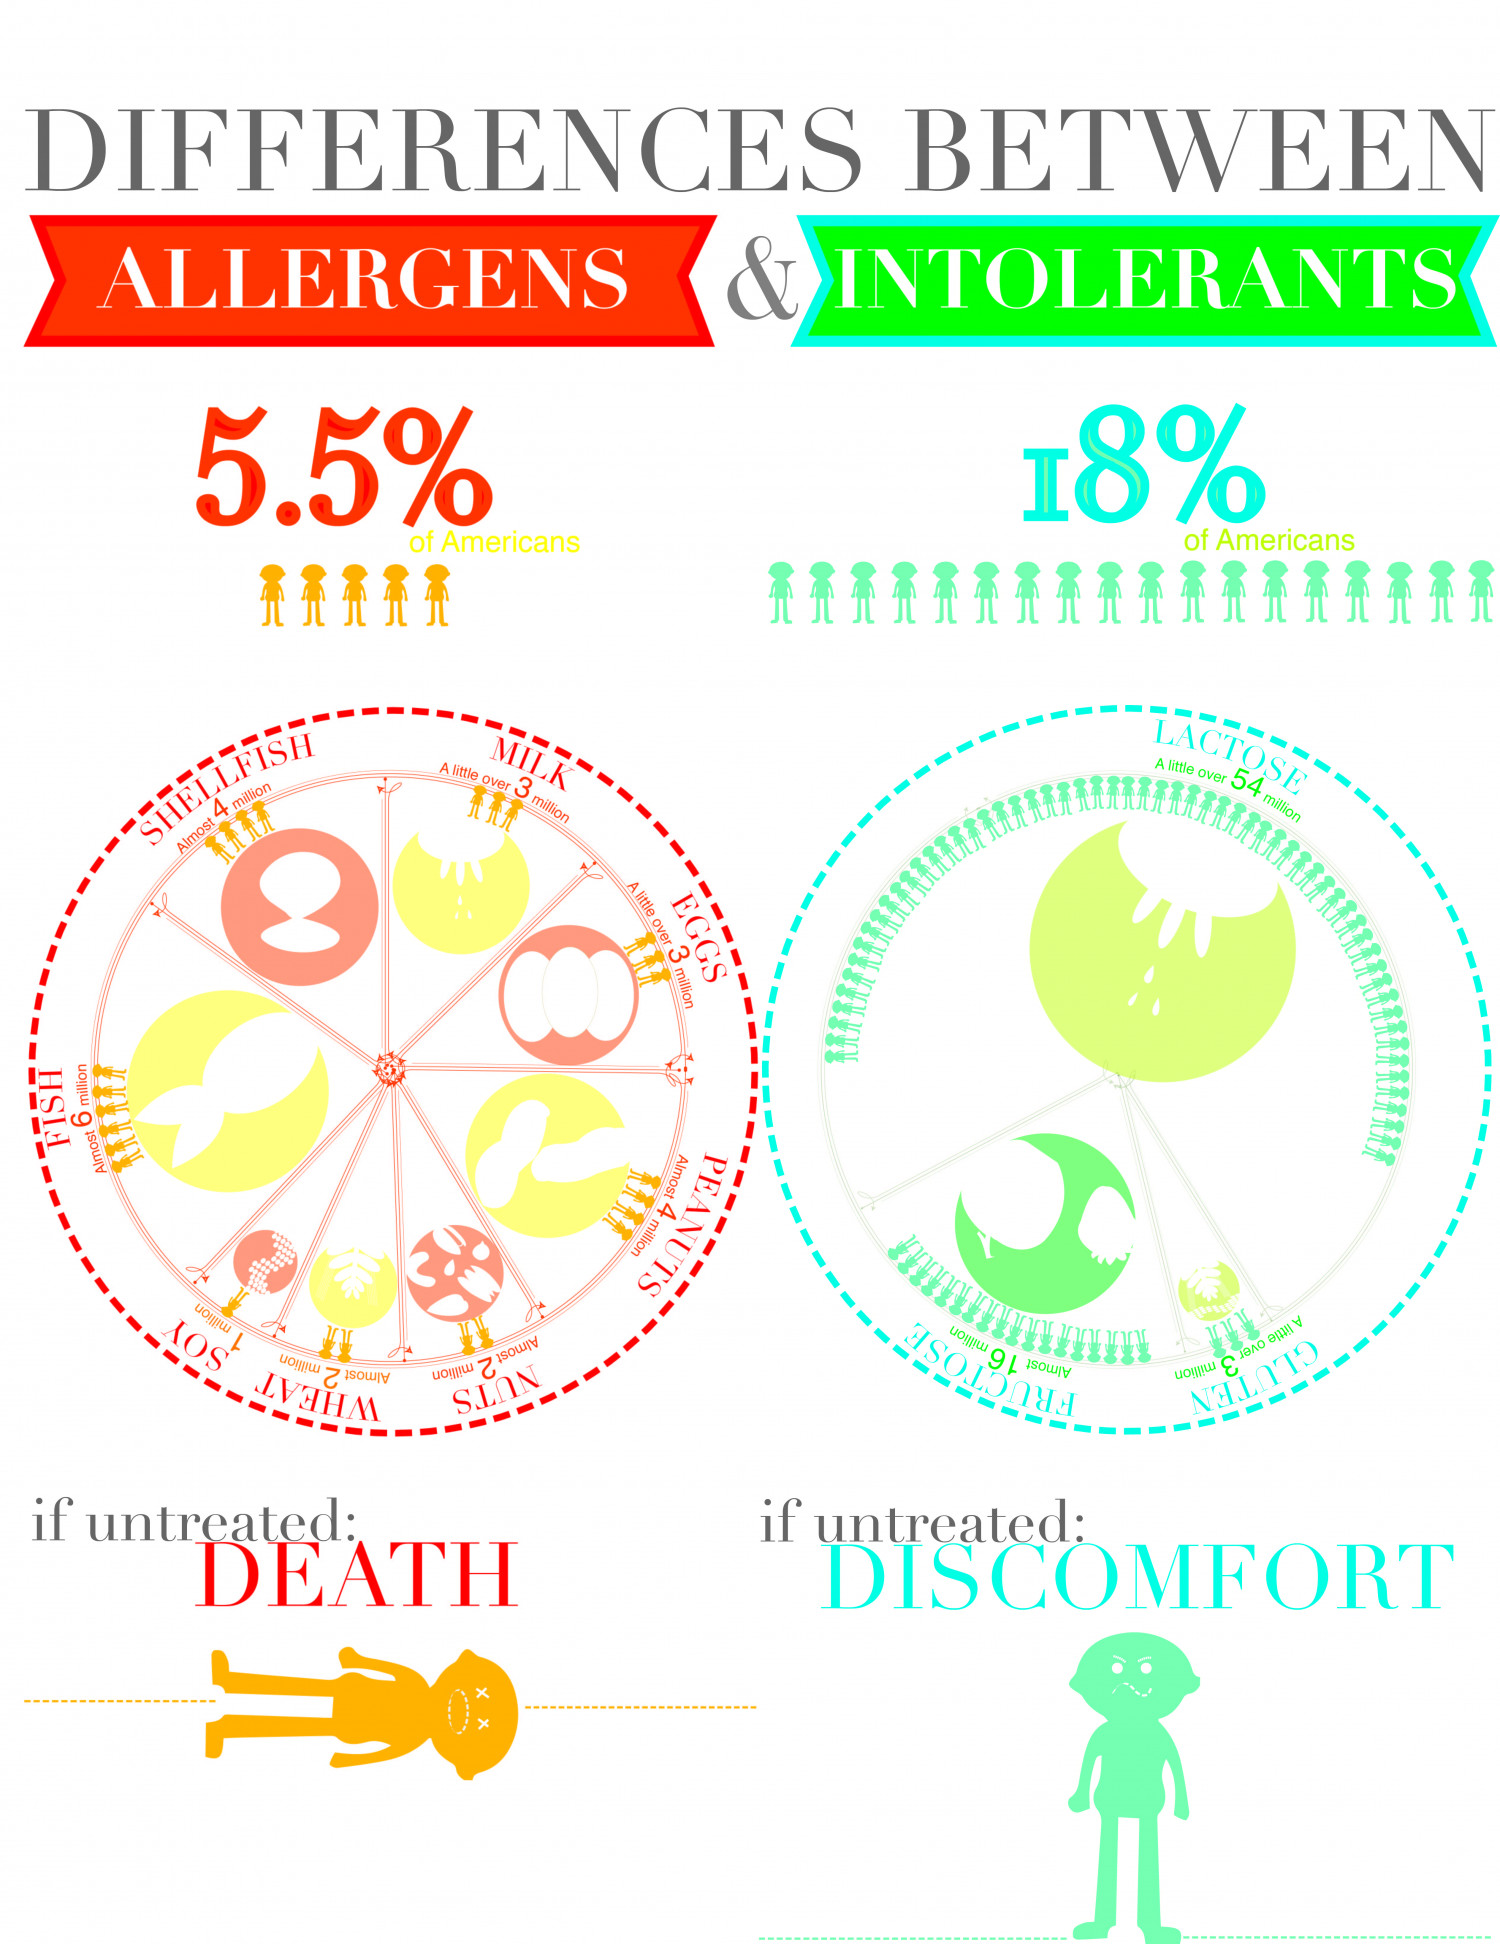 Differences Between Allergens & Intolerants Infographic